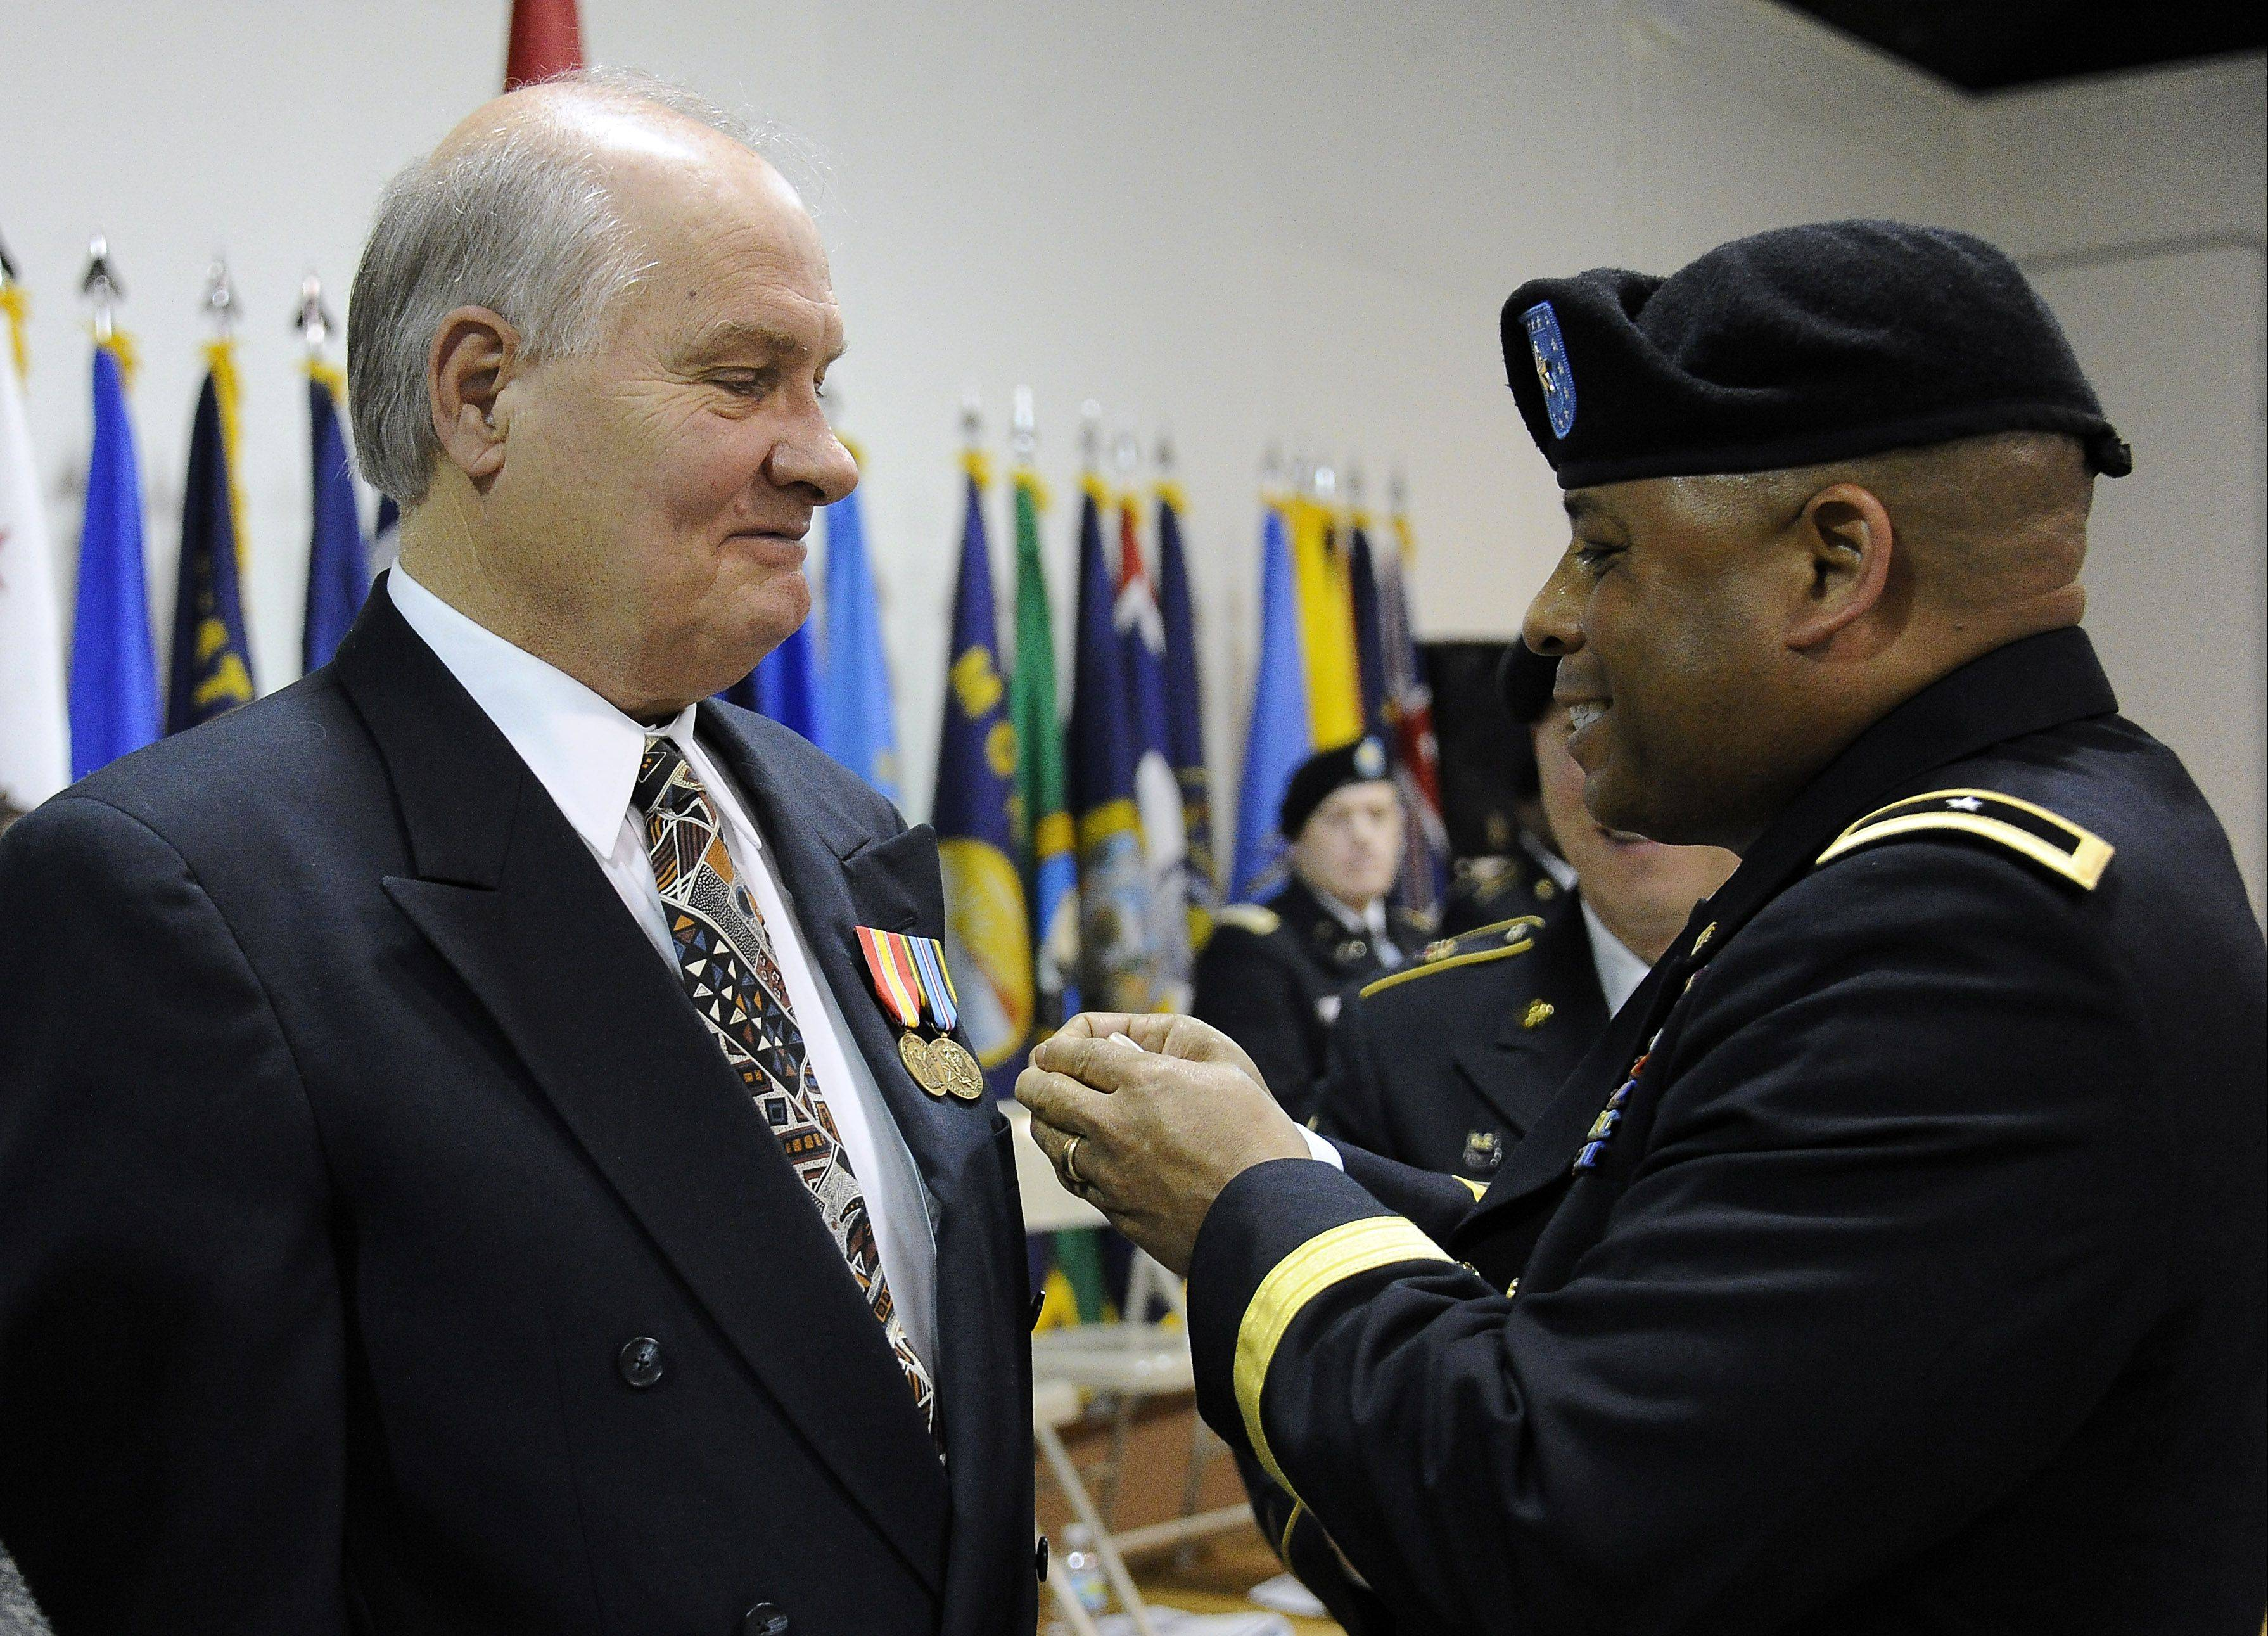 Brig. Gen. Gracus Dunn of the 85th support Command pins medals on Gary Roberts, 71, of Arlington Heights that he earned for his service 47 years ago in the Dominican Republic. The ceremony was Saturday at the U.S. Army Reserve Training Center in Arlington Heights.